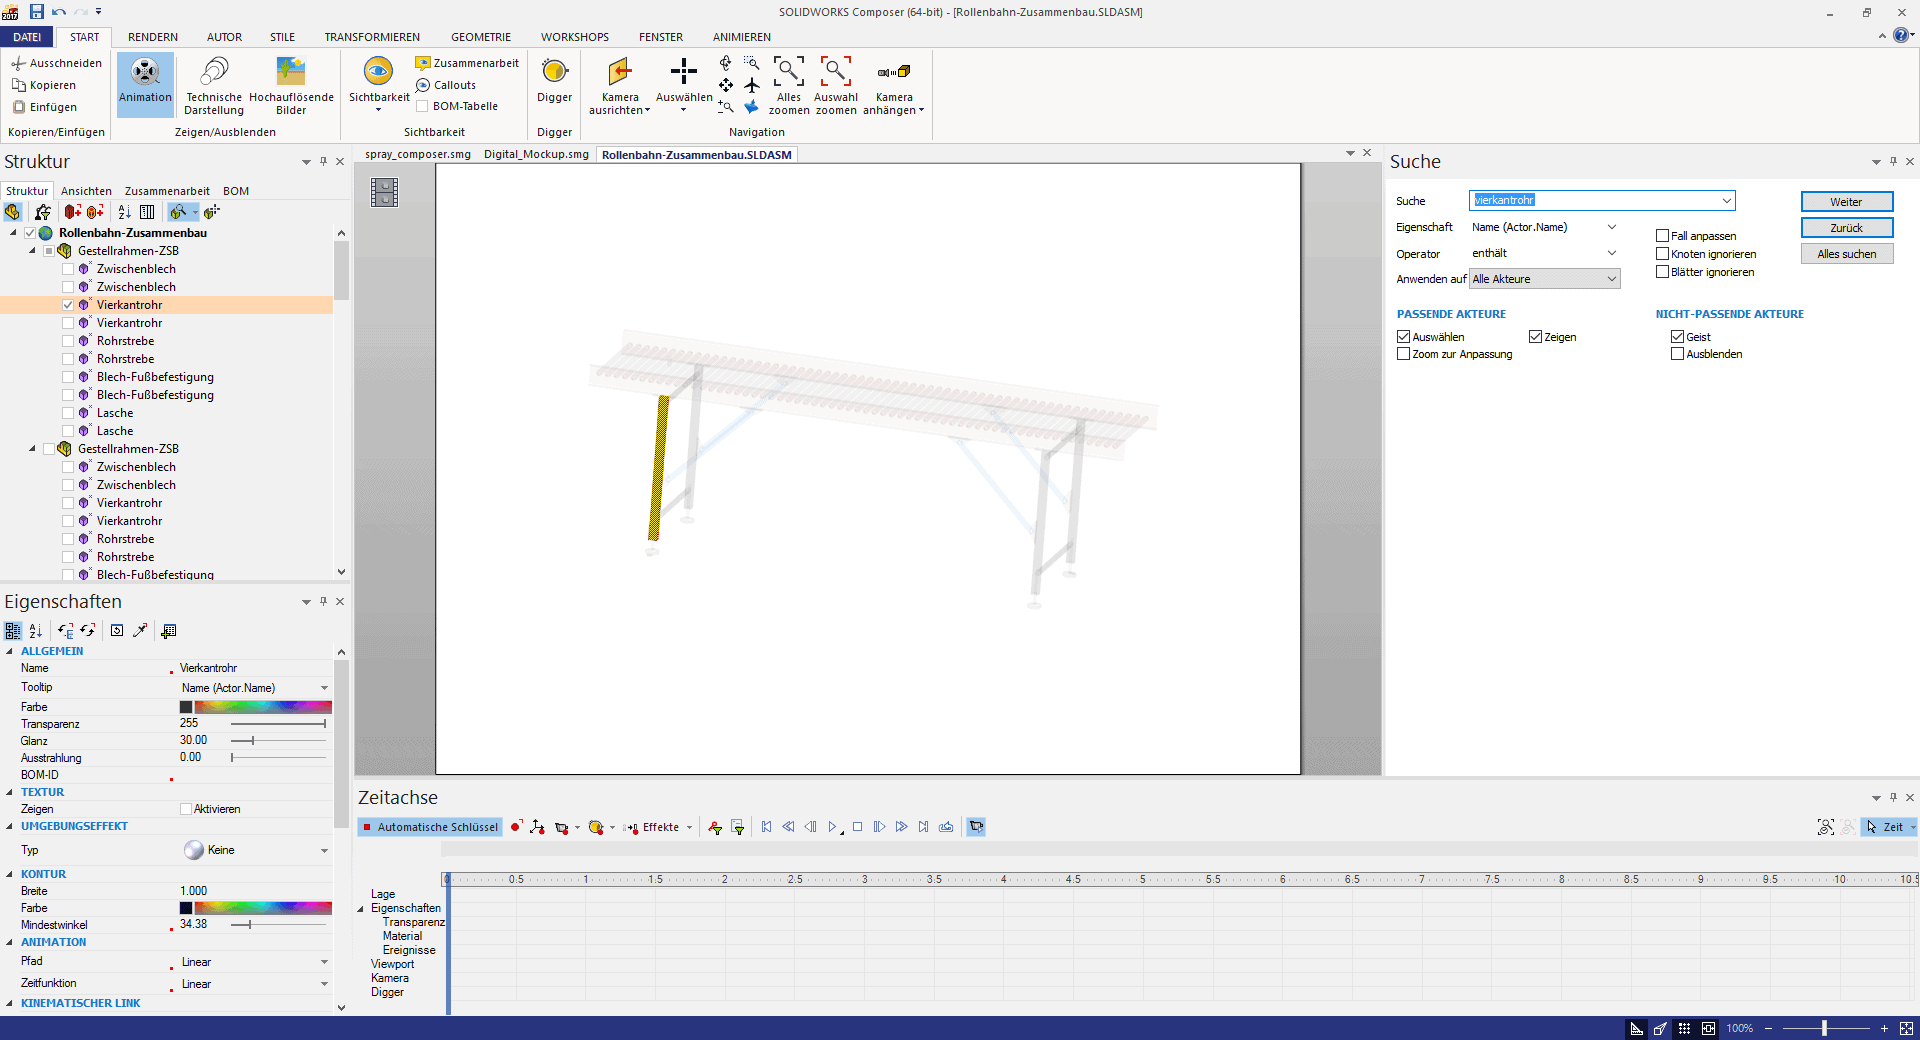 how to open solidworks composer